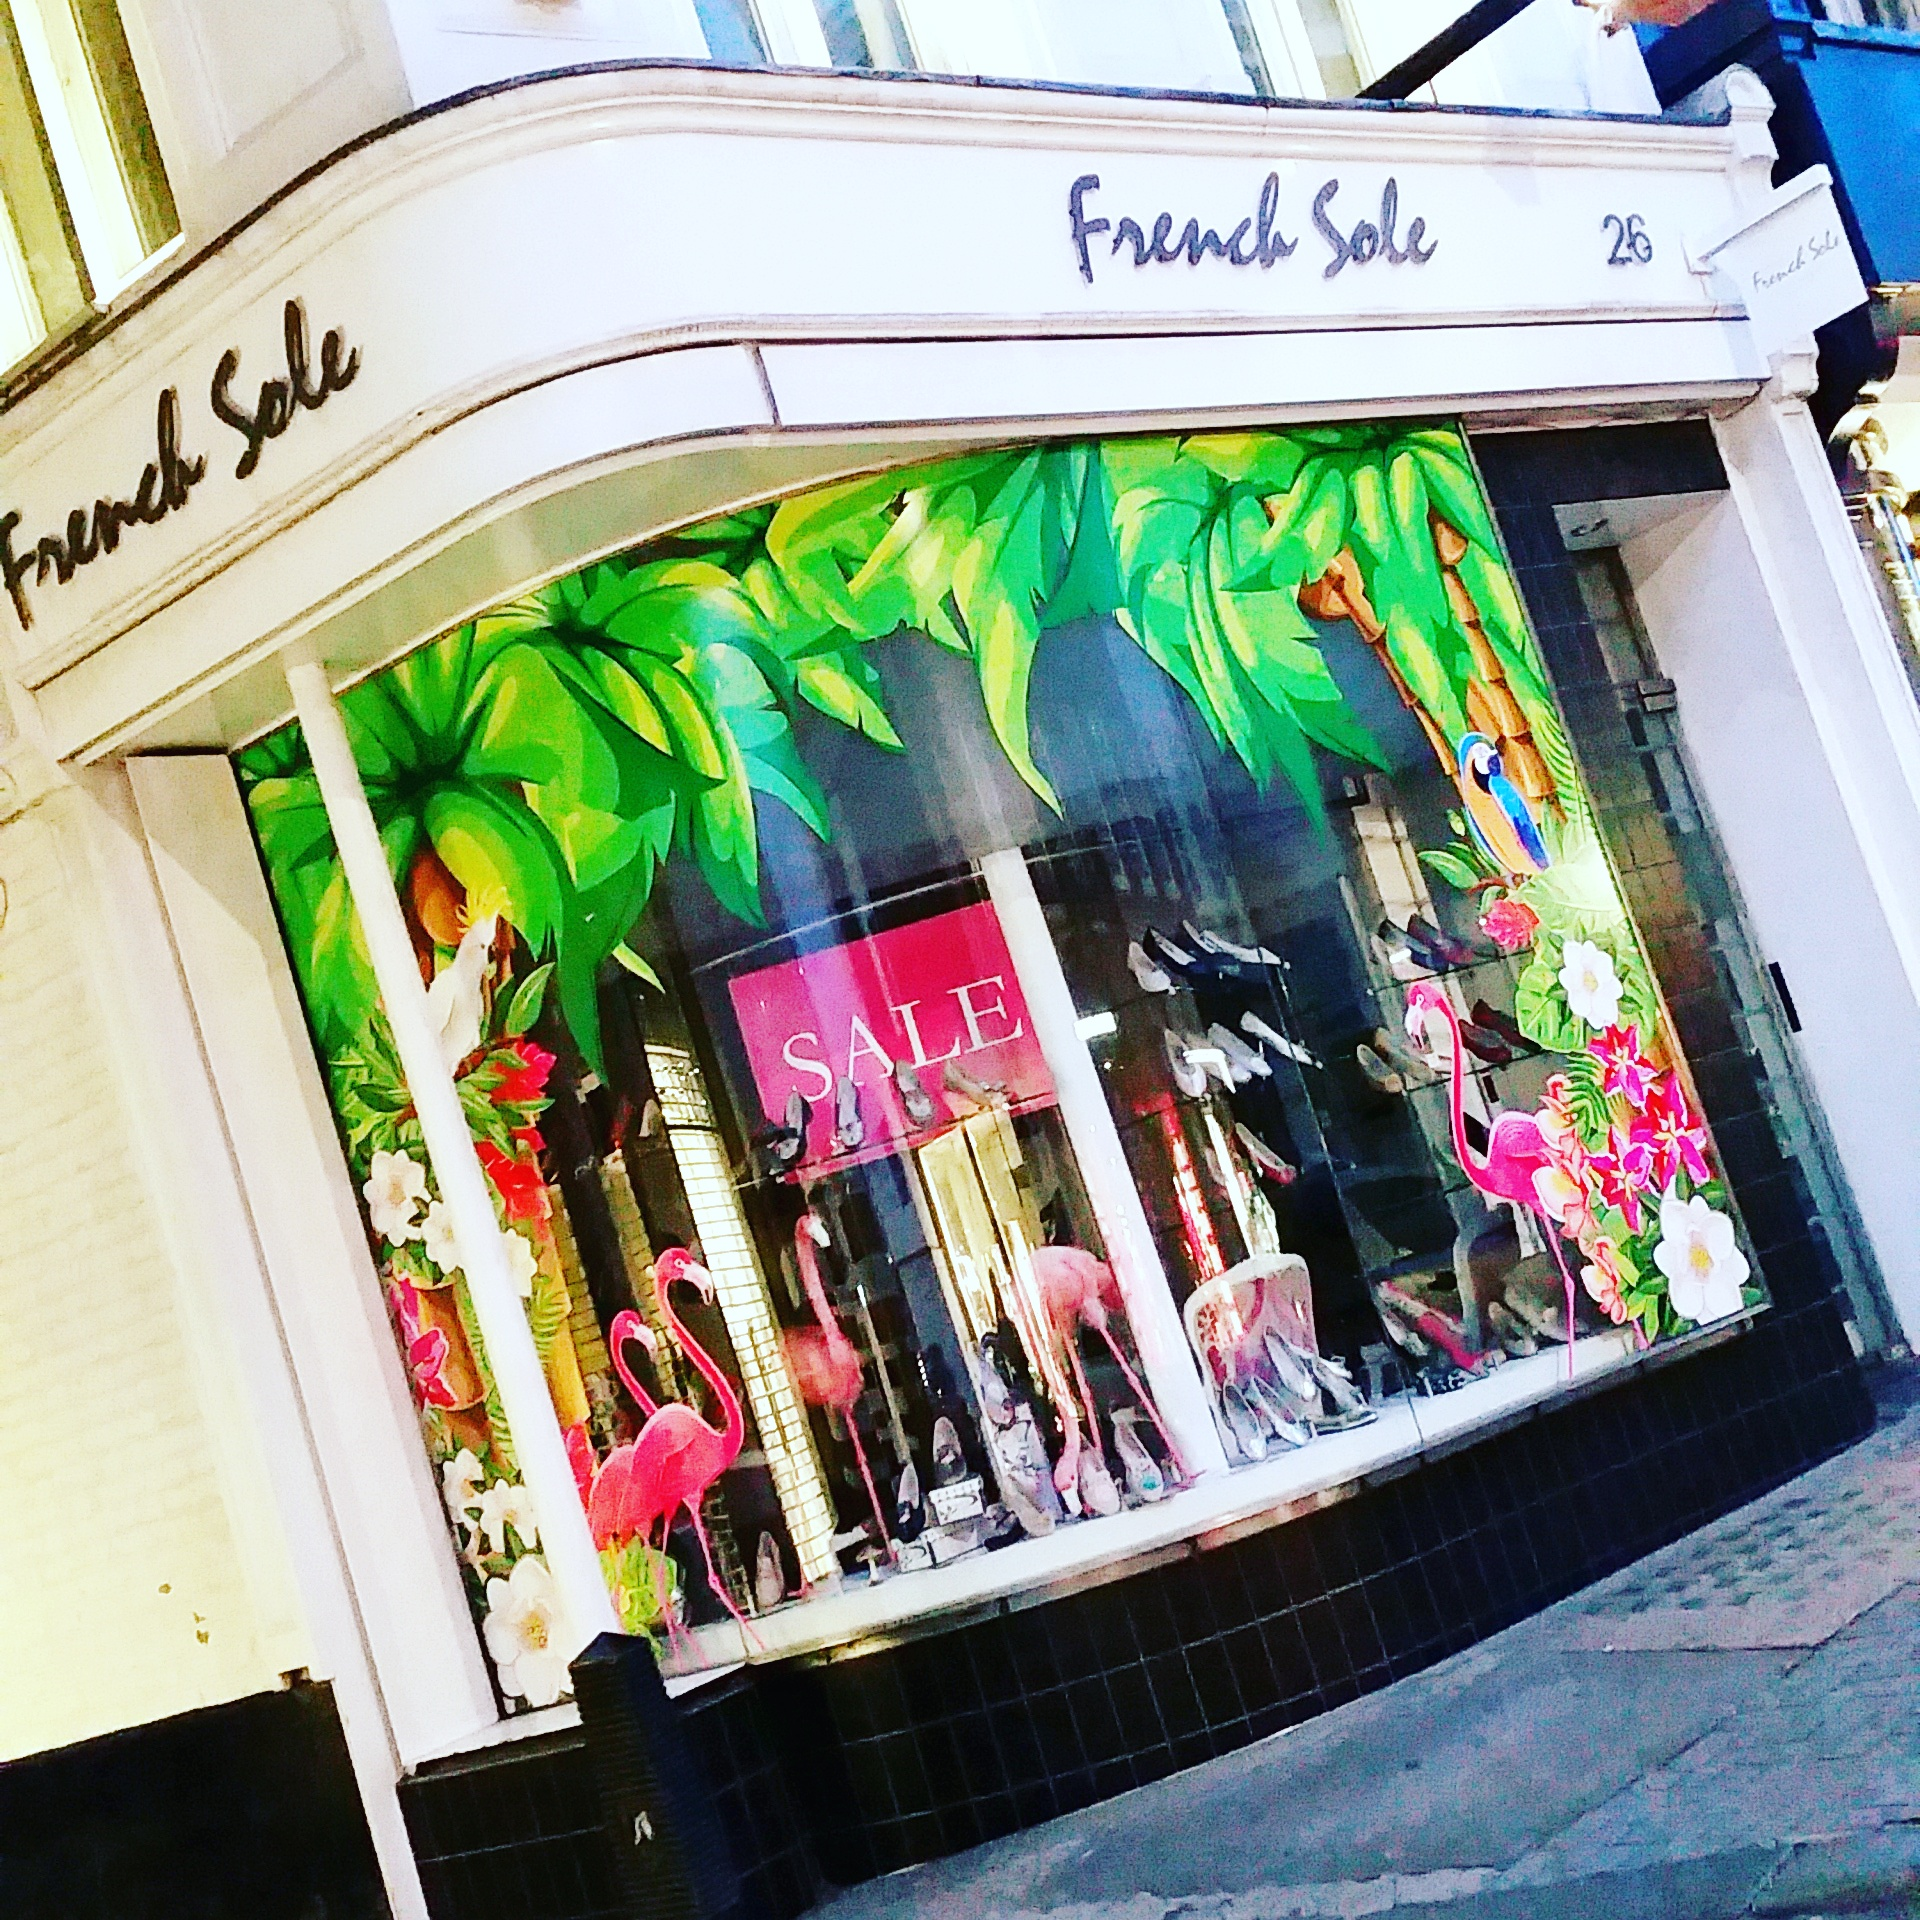 French Sole - Promotional Window Display for the Chelsea Flower Show